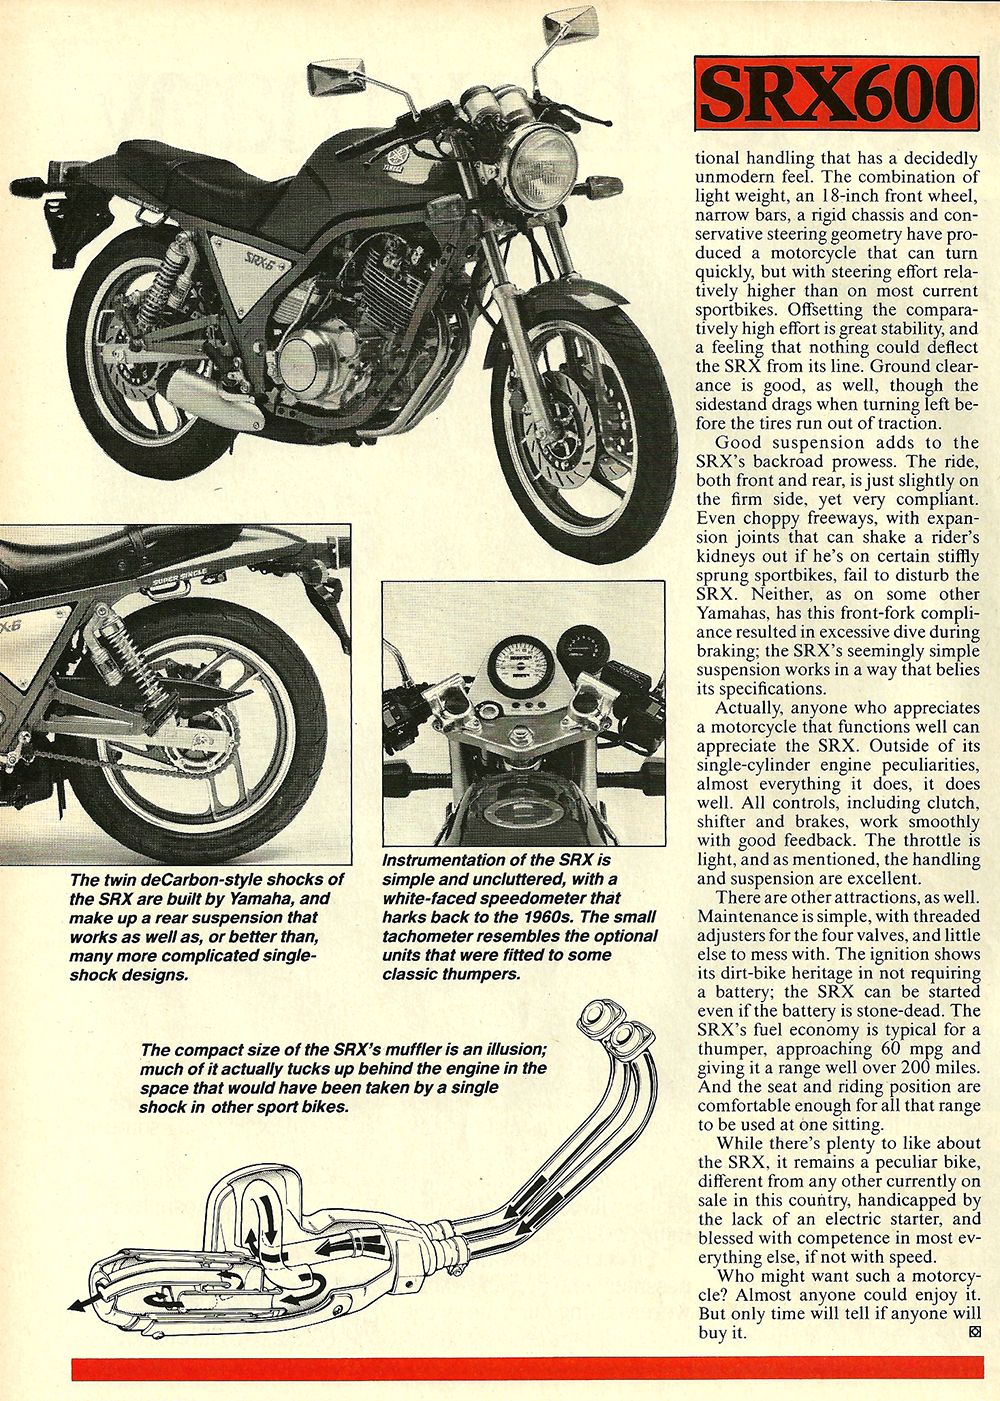 1986 Yamaha SRX600 road test 05.jpg